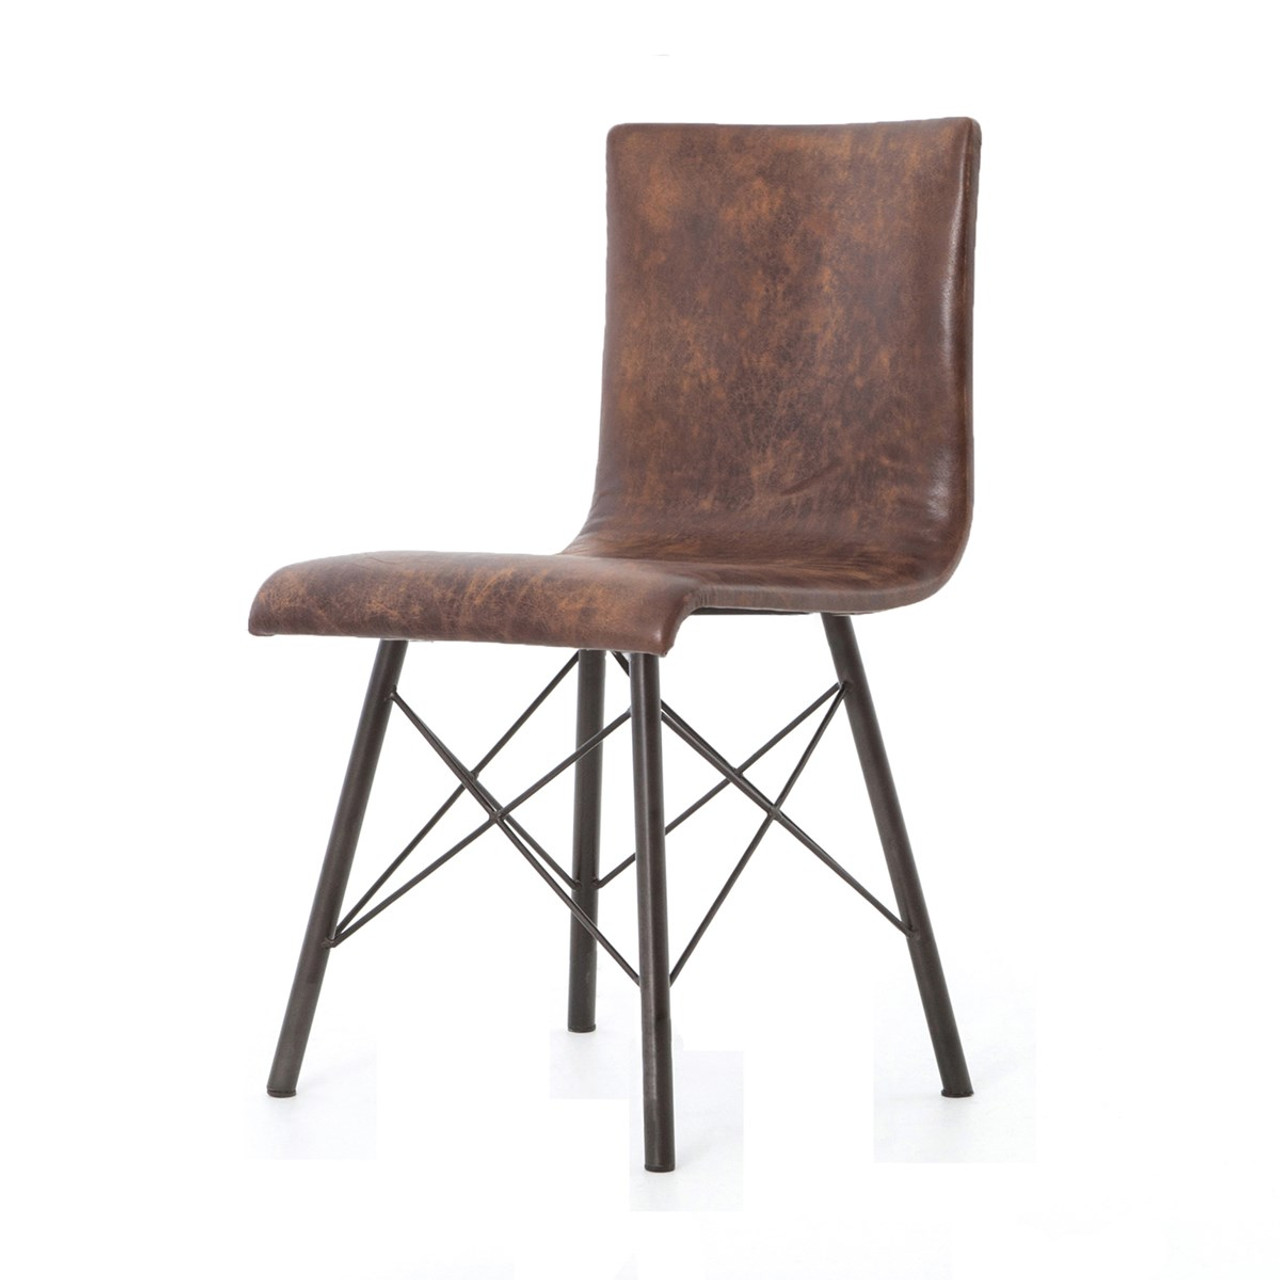 leather dining chairs modern bistro diaw distressed brown chair zin home mid century